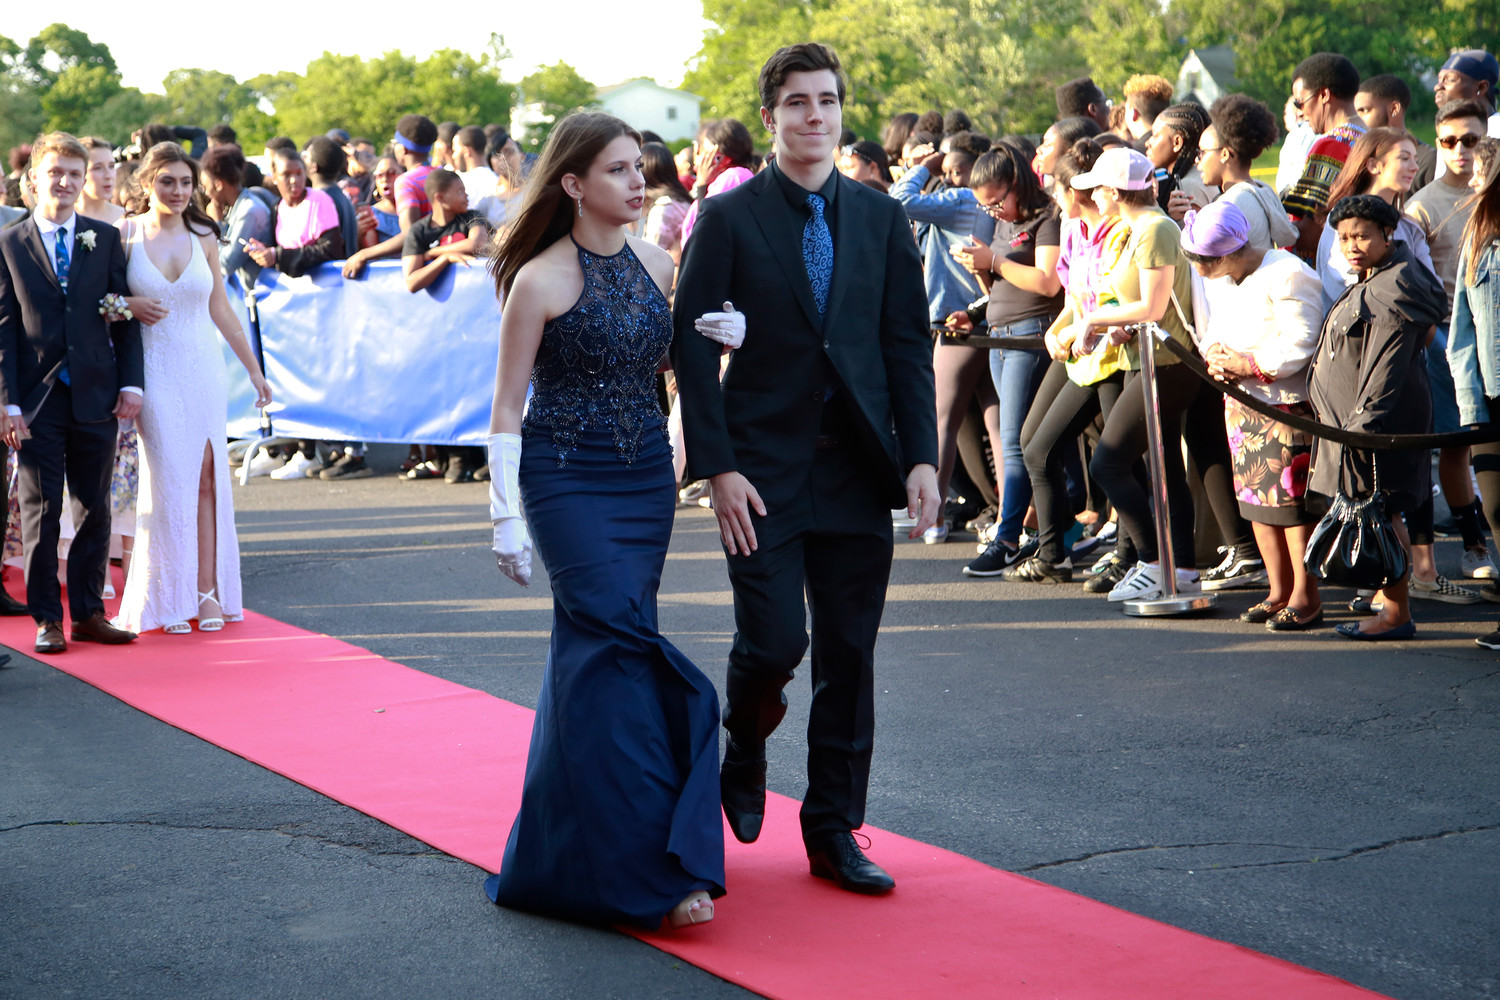 Elizabeth Ray, above right, and Blake Jamilkoswki also walked the red carpet.